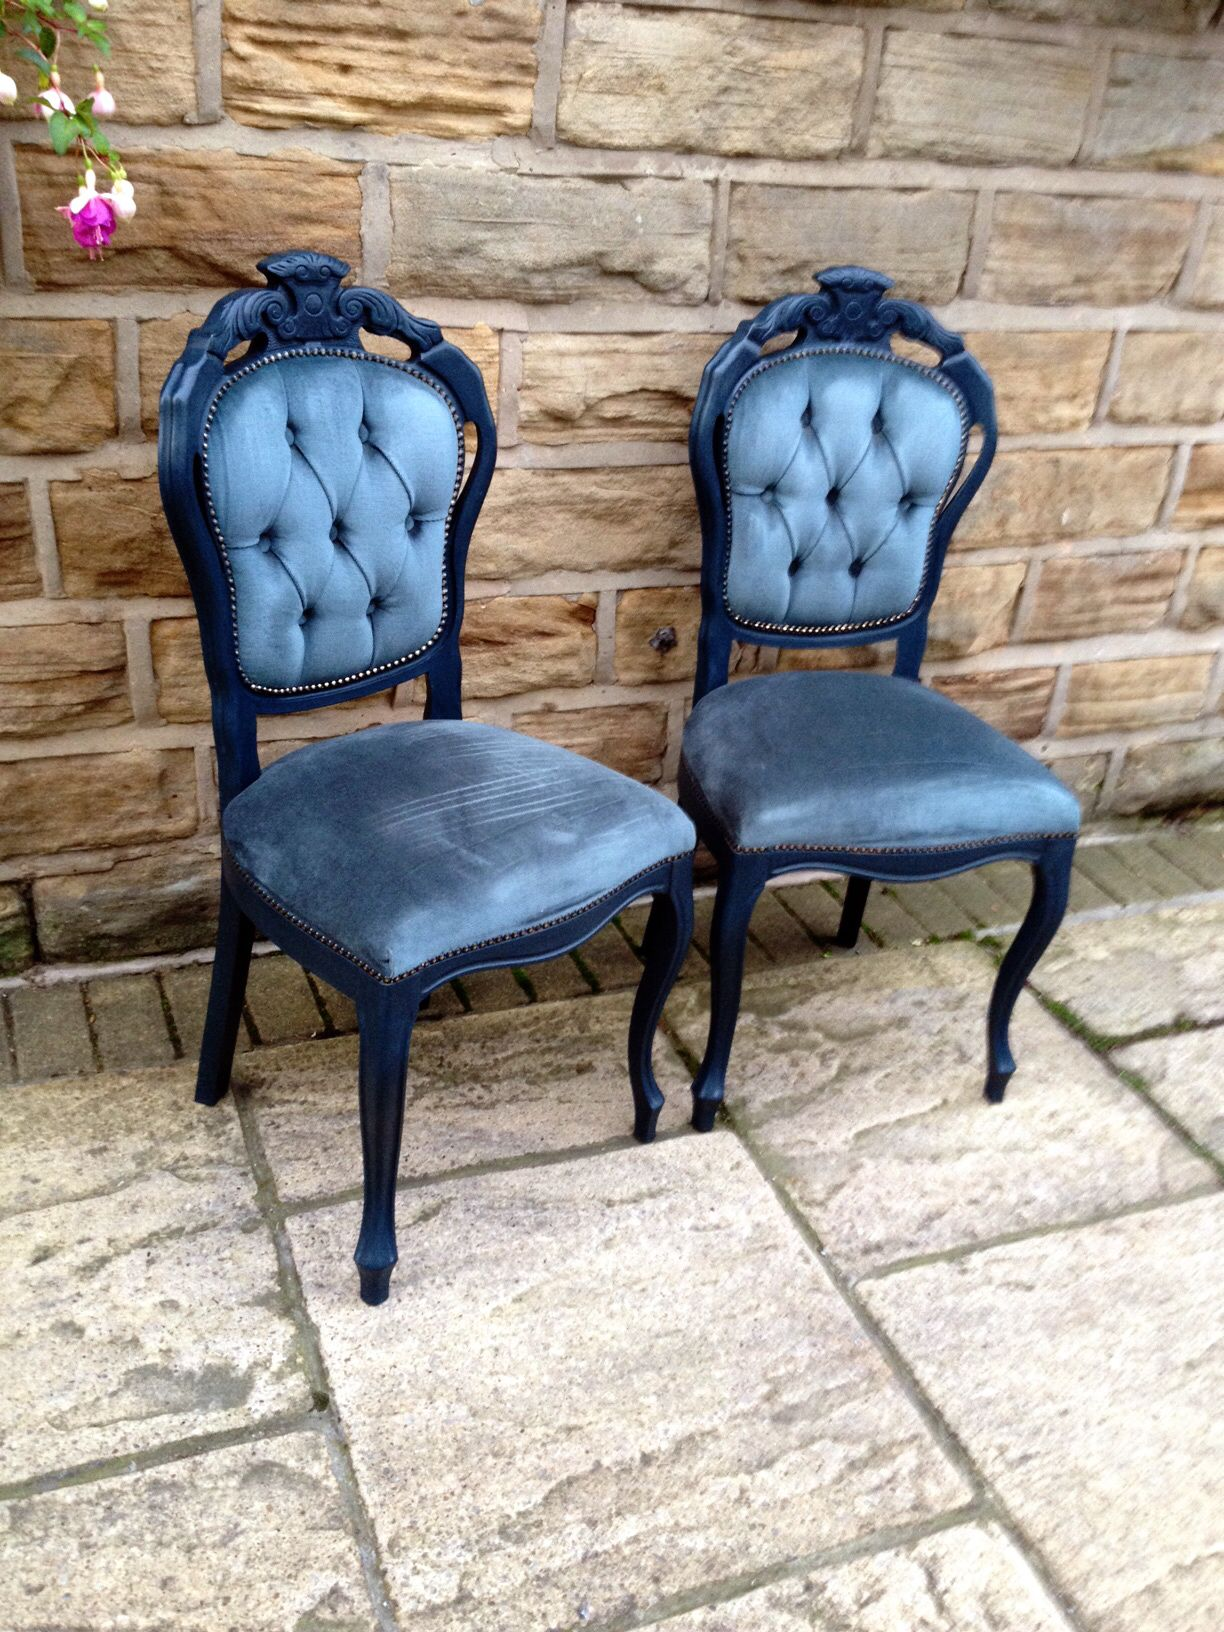 professional furniture paintingCarver chairs handpainted in Annie Sloan Aubusson Blue  Graphite